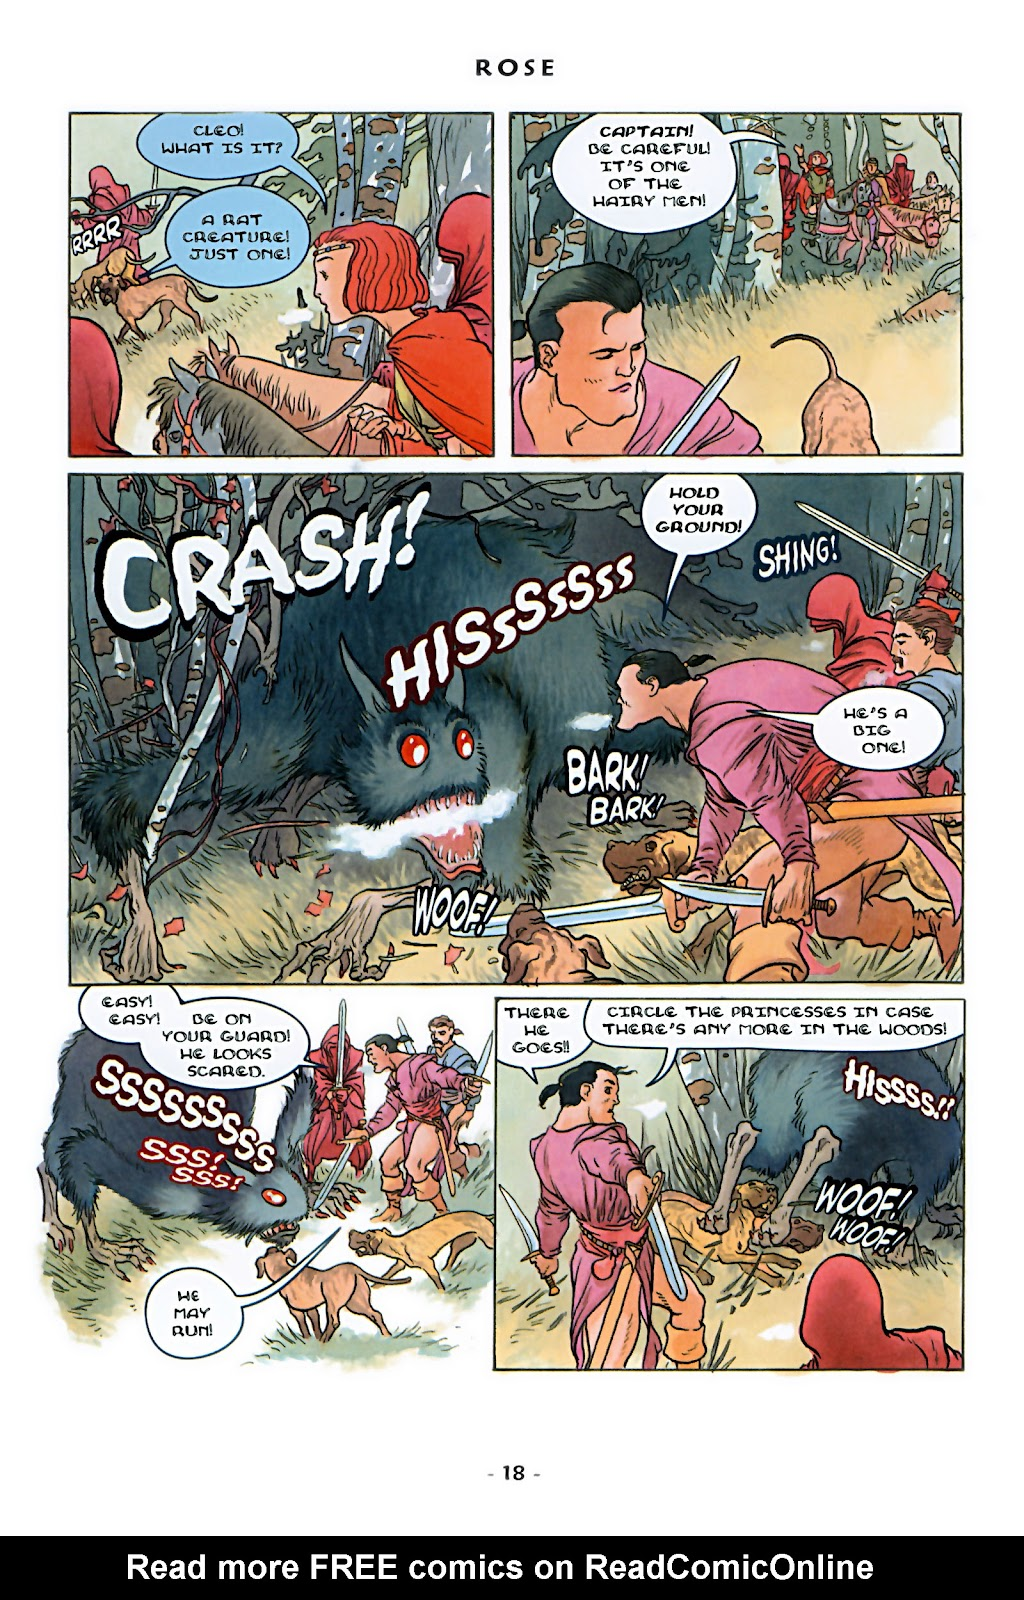 Read online Rose (2000) comic -  Issue # TPB - 24